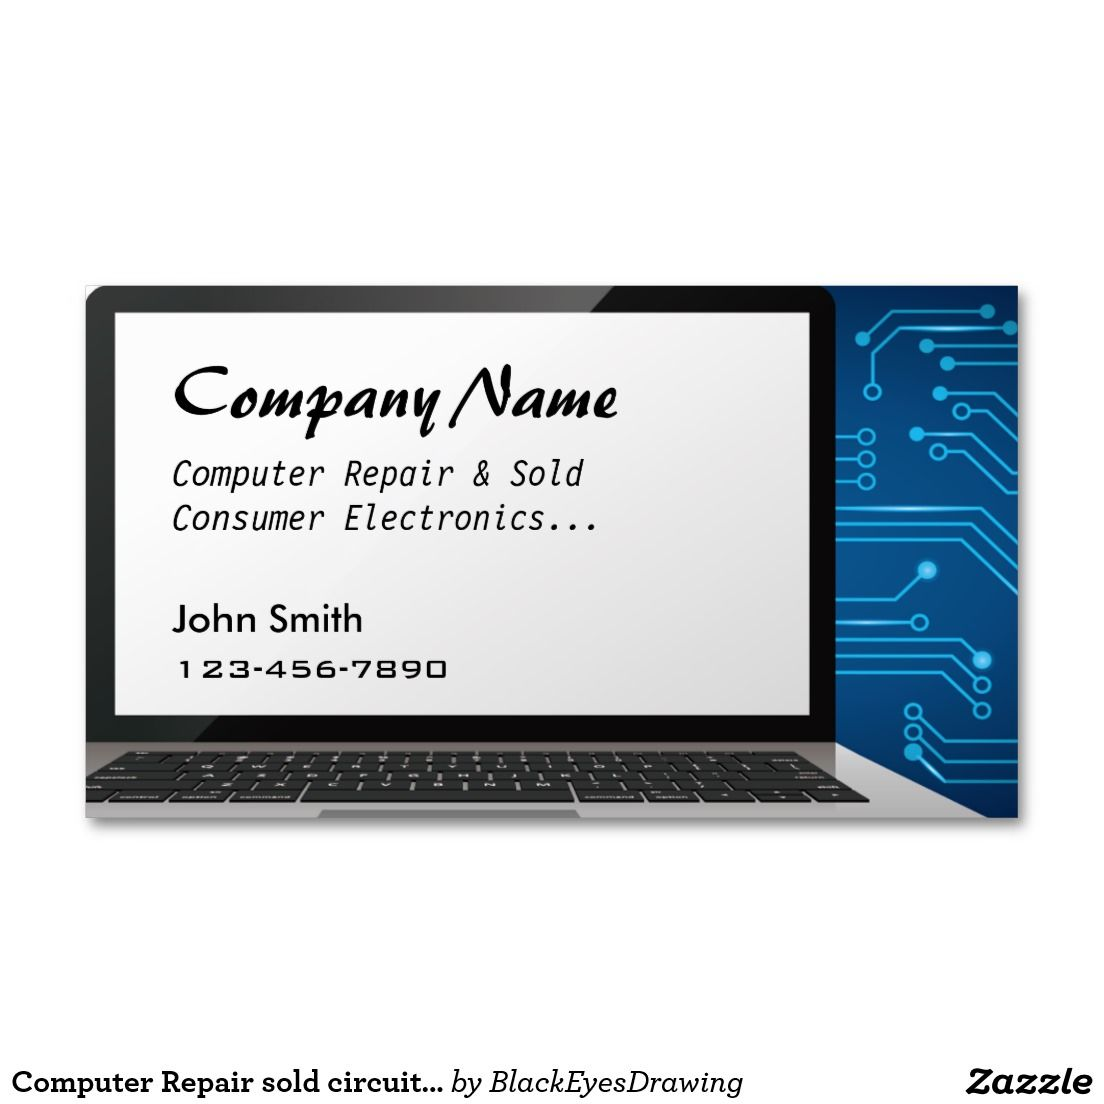 Computer Repair Sold Circuit Board Business Cards Pinterest Logo